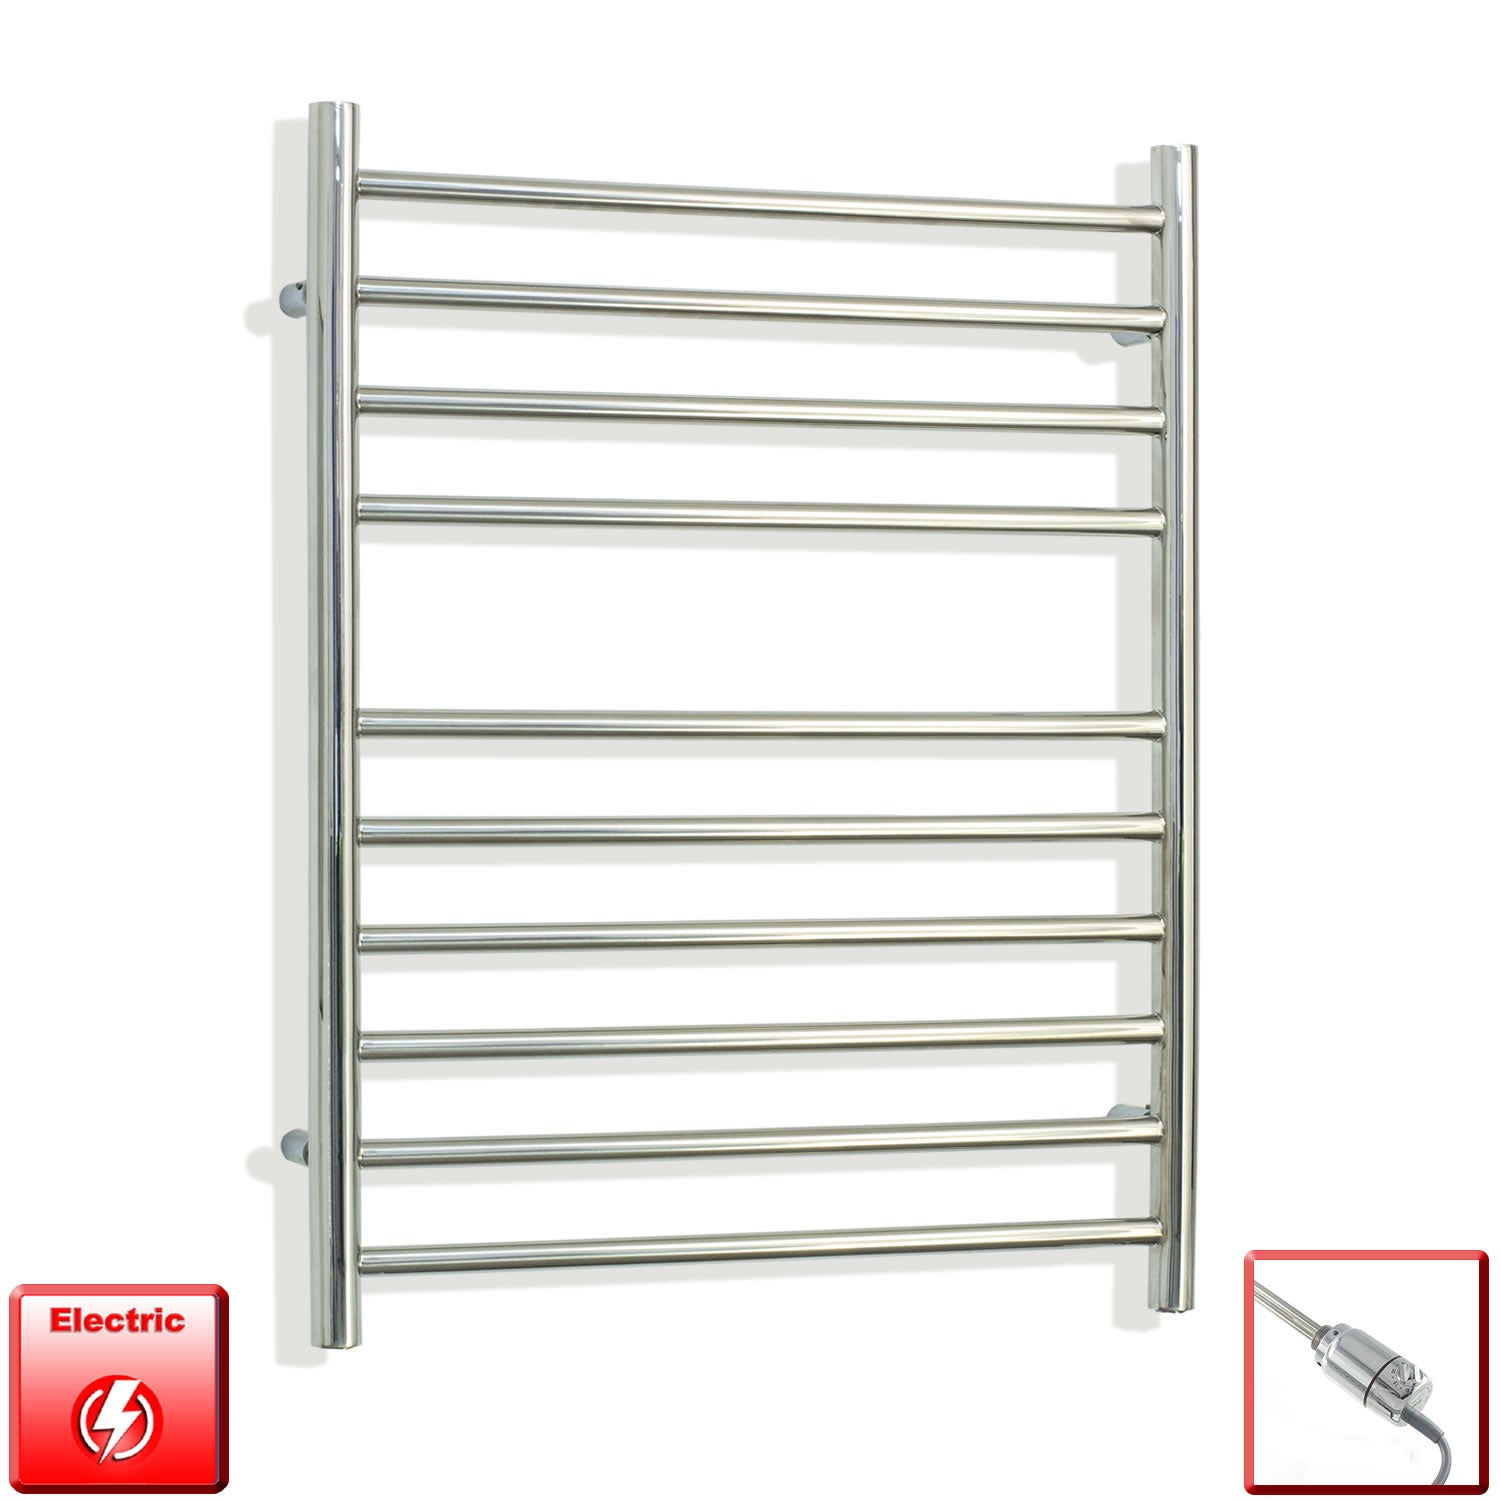 750 mm High 600 mm Wide Pre-Filled Electric Stainless Steel Heated Towel Rail Radiator with gt thermostatic element